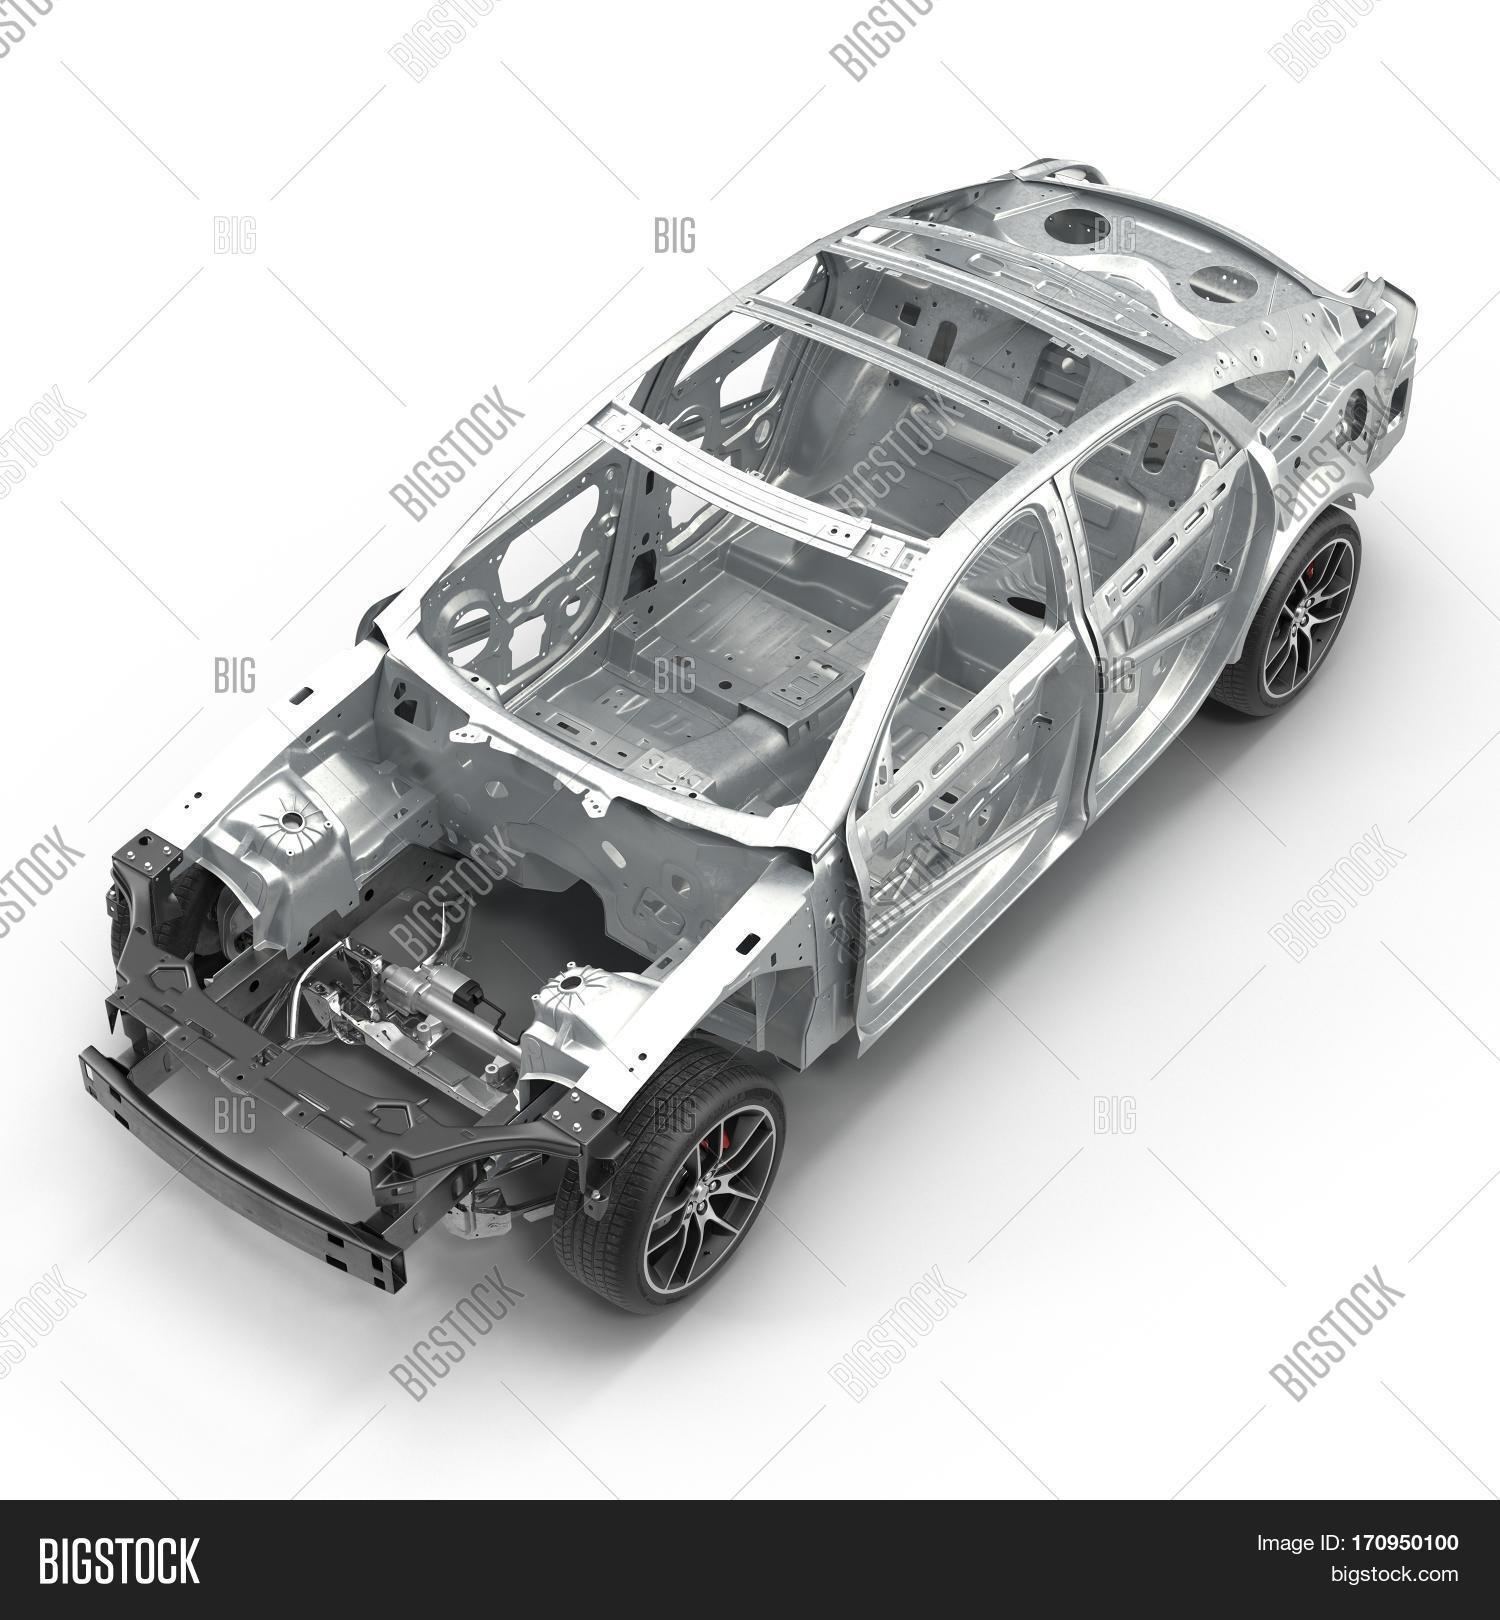 Angle Car Frame Image & Photo (Free Trial) | Bigstock